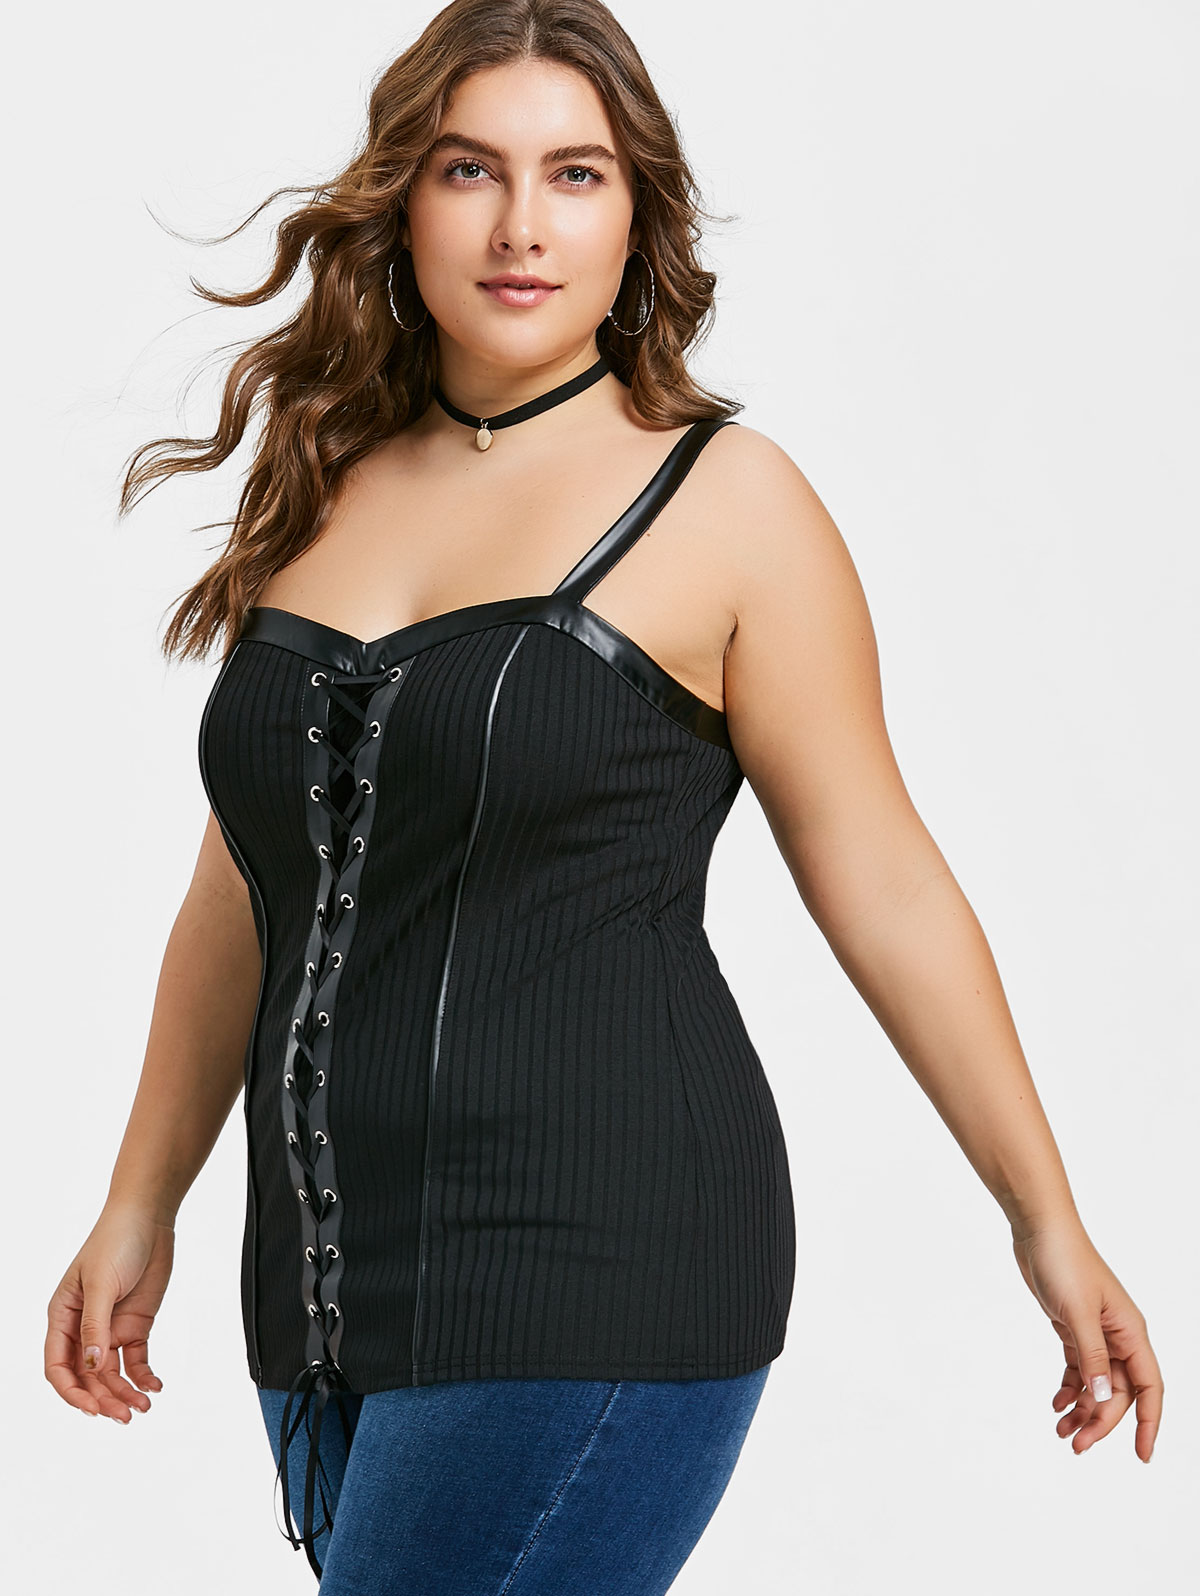 9c7421dc81 2018 Plus Size PU Leather Trim Lace Up Top Summer Black Ribbed Fabric  Corset Women Tops Camis Casual Sweetheart Neck Top Tees-in Camis from  Women s Clothing ...